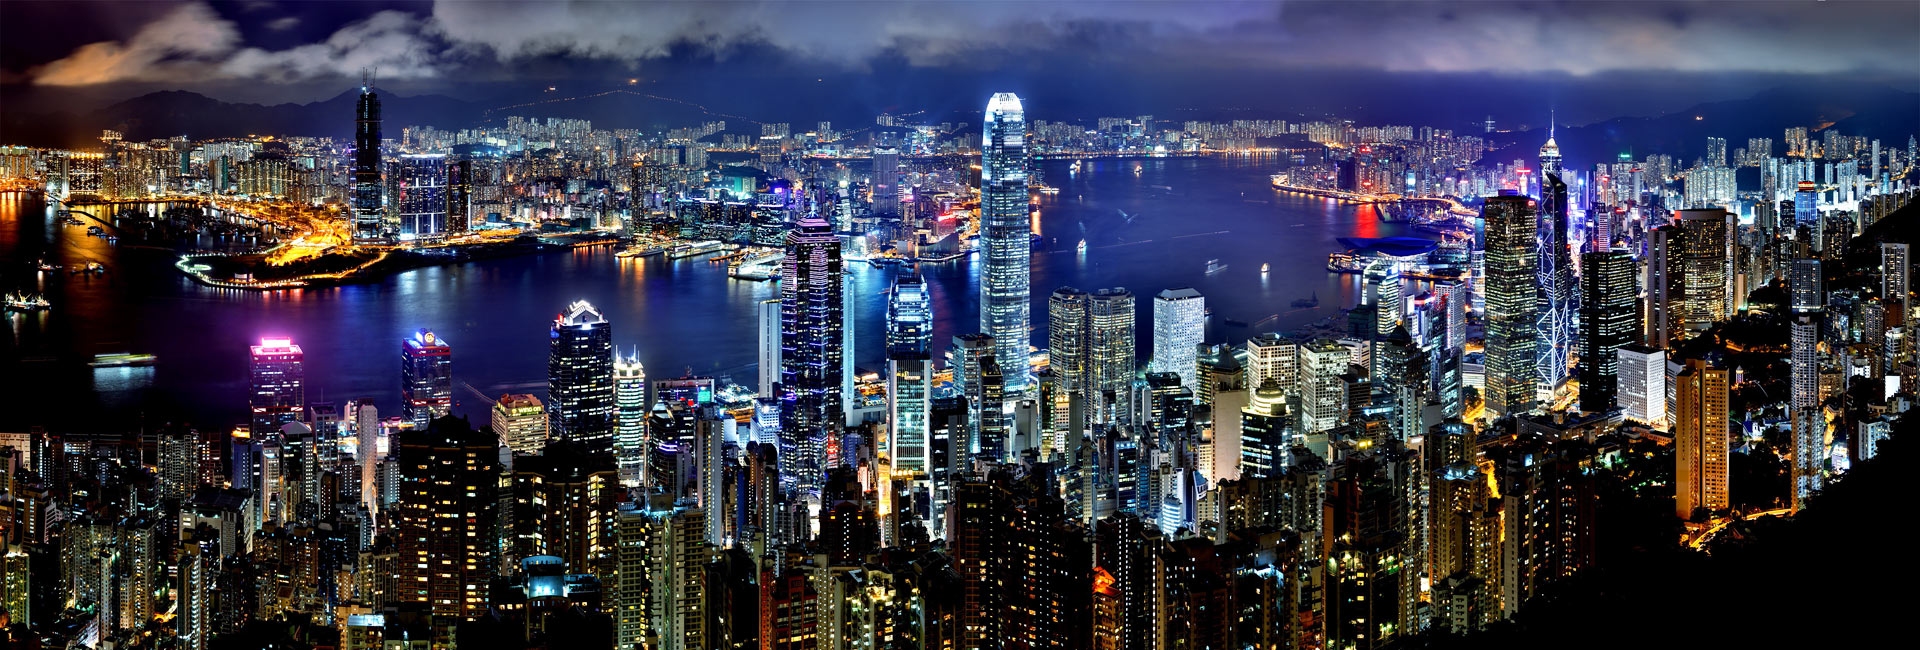 5 Days Hong Kong Shanghai Tour by High Speed Train